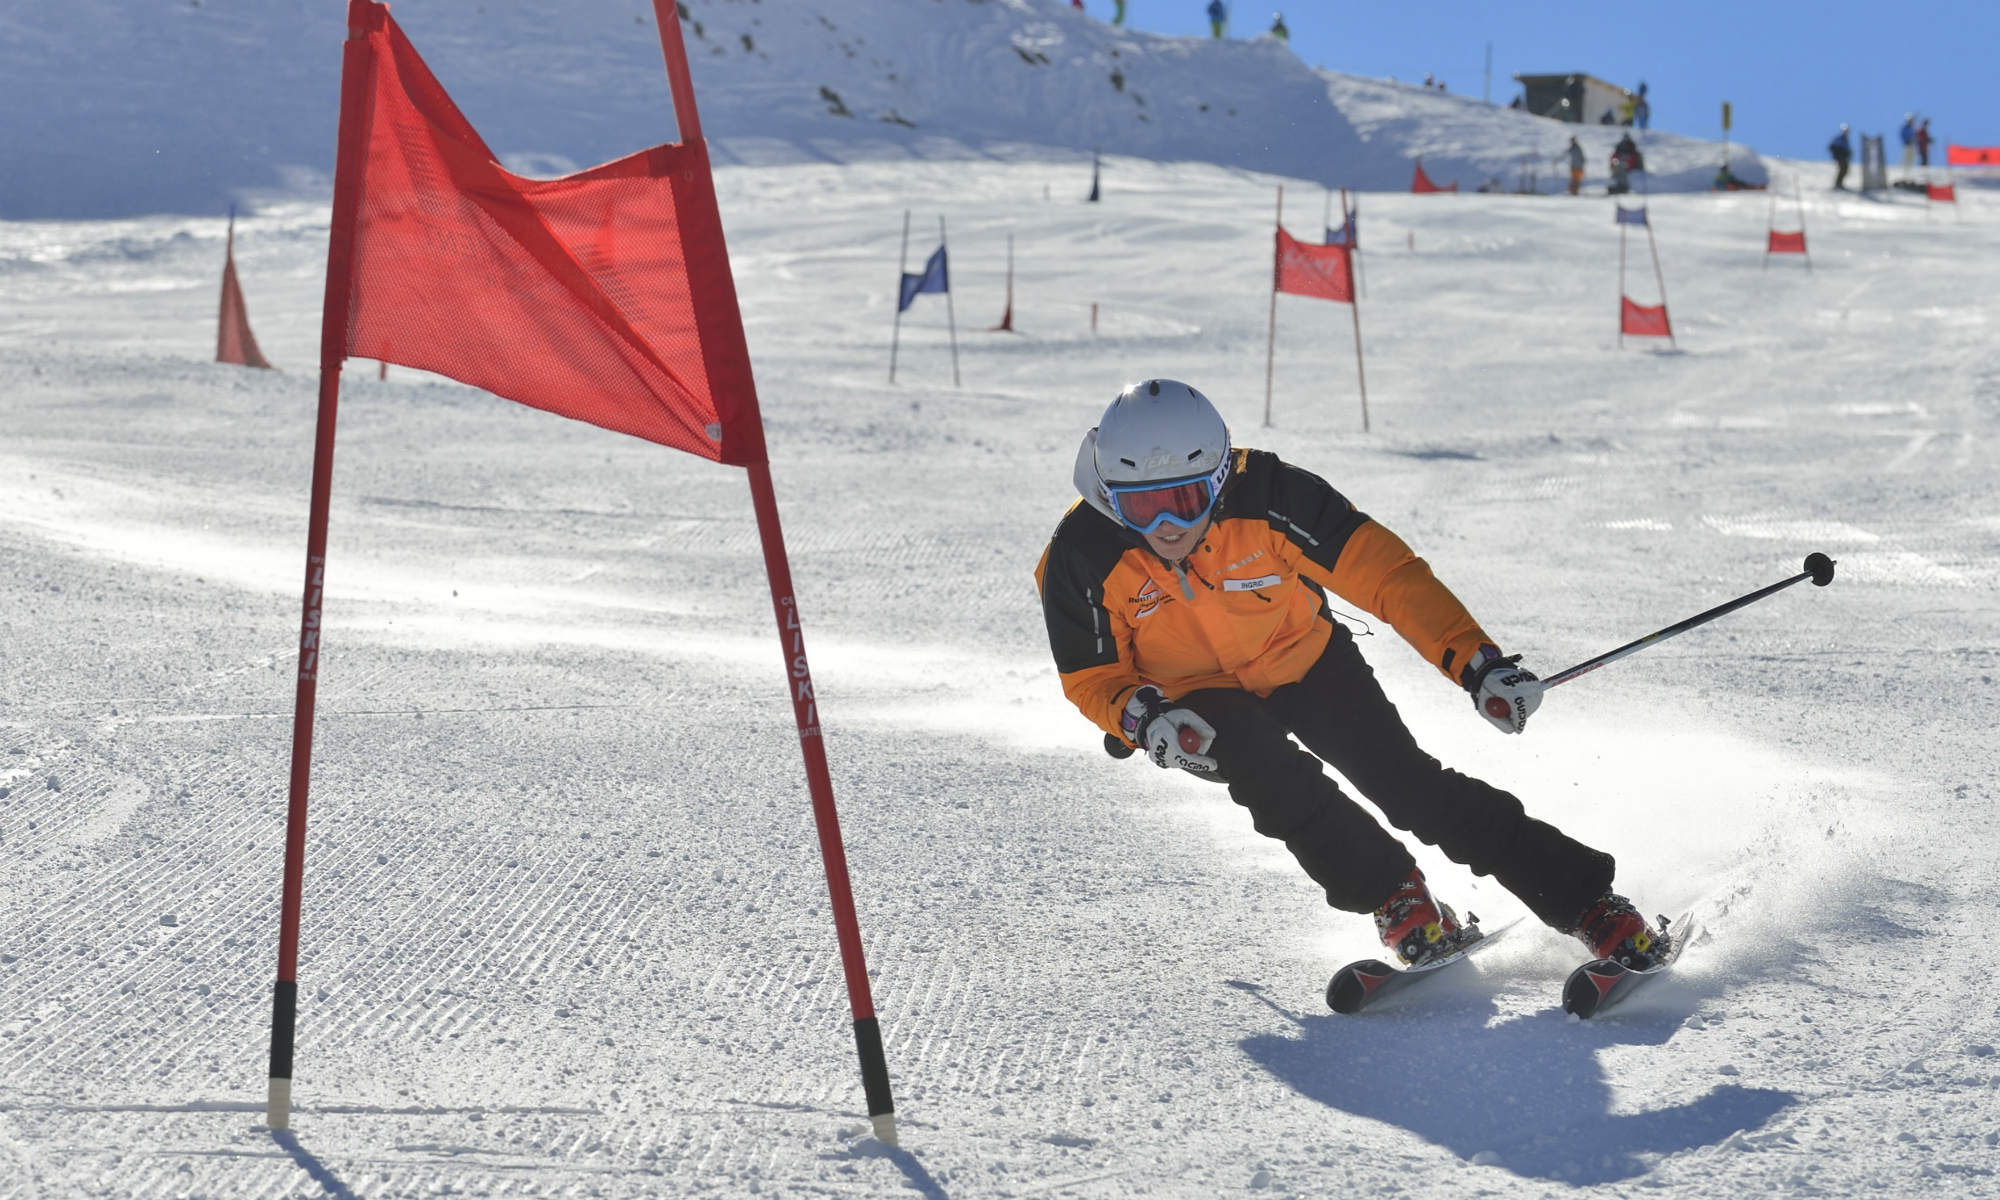 Ski racer Ingrid Salvenmoser demonstrates race carving.